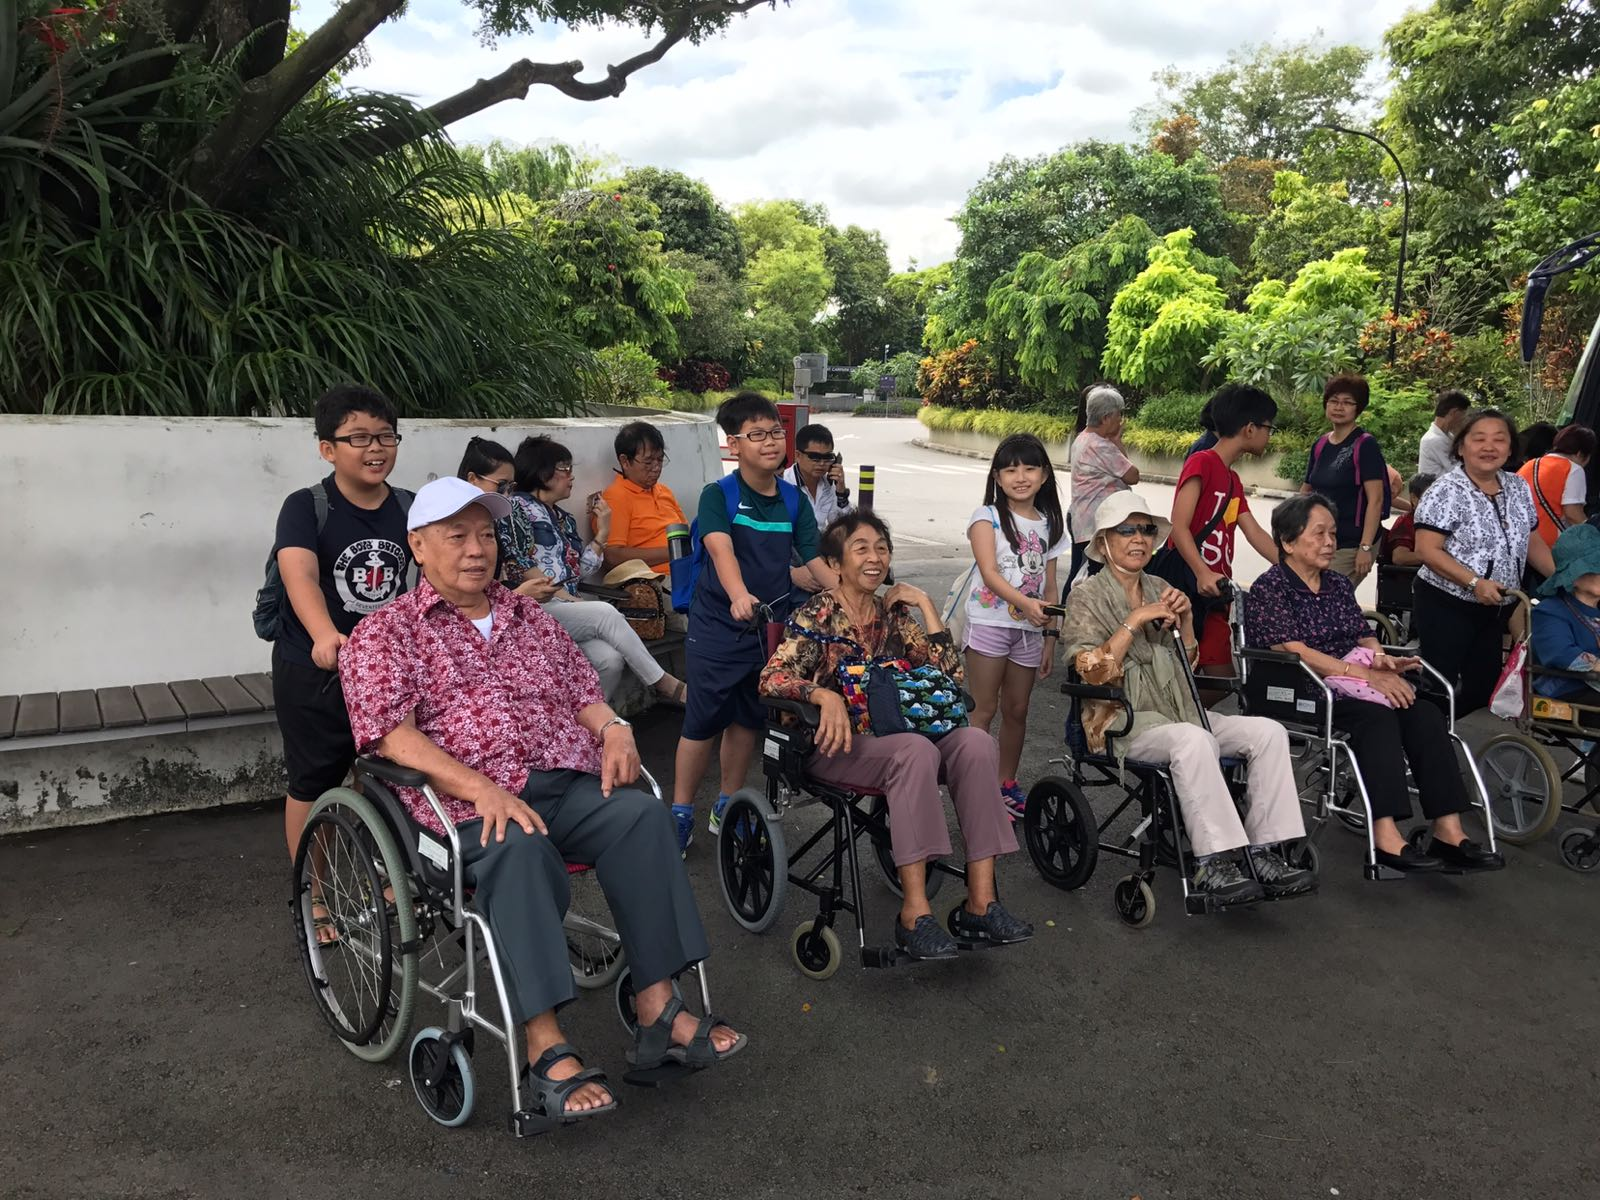 Inter-Generational Bonding - Outing to Gardens by the Bay